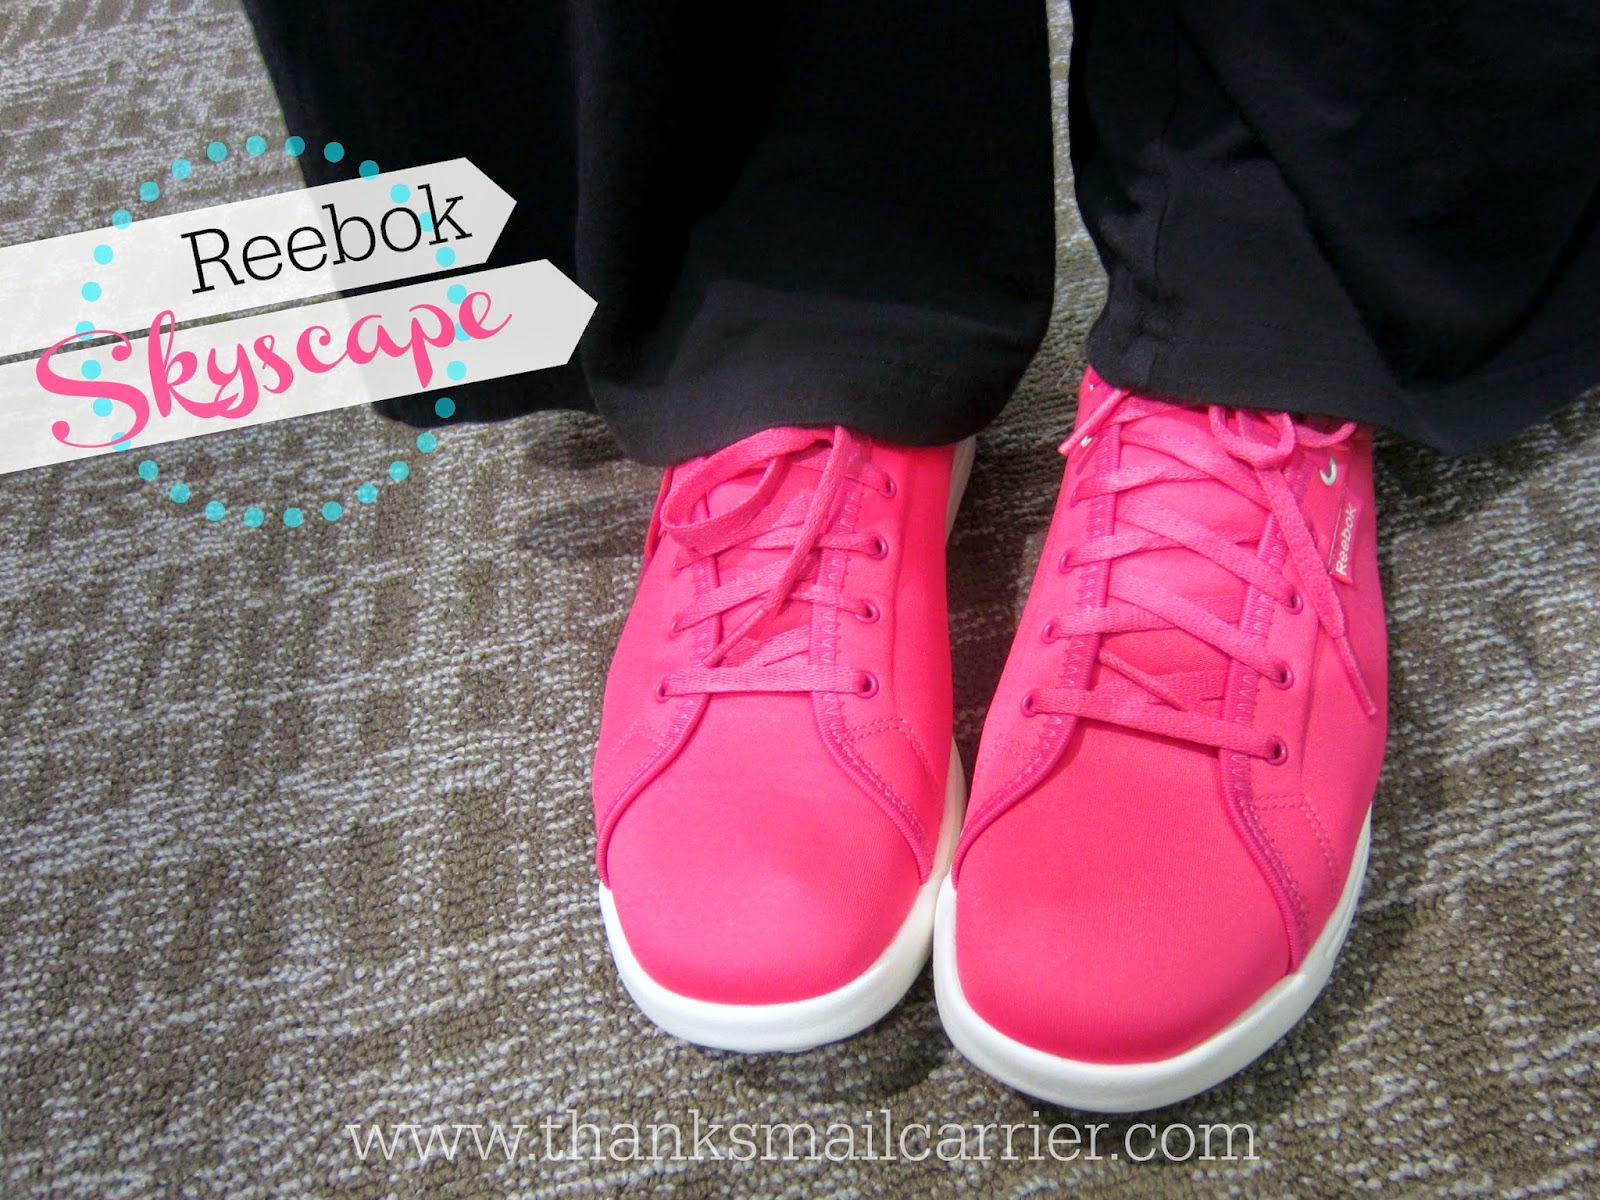 Reebok Skyscape review